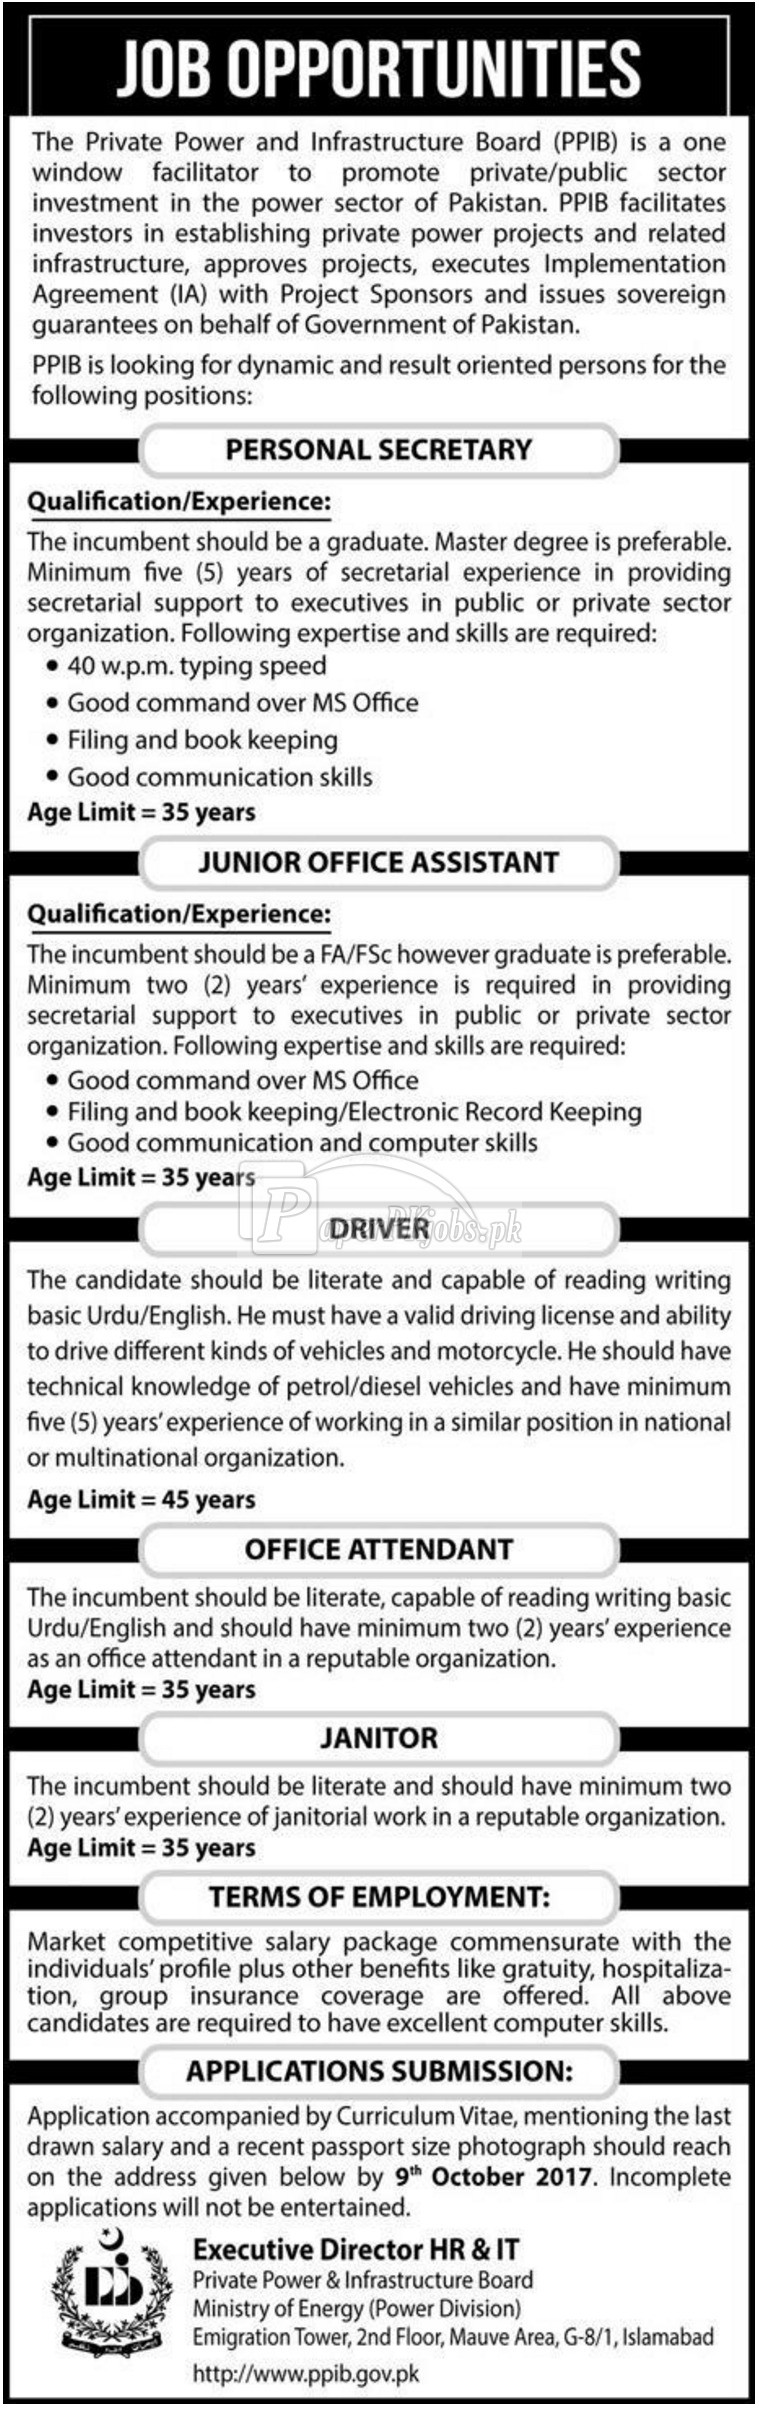 Private Power & Infrastructure Board PPIB Ministry of Energy Islamabad Jobs 2017